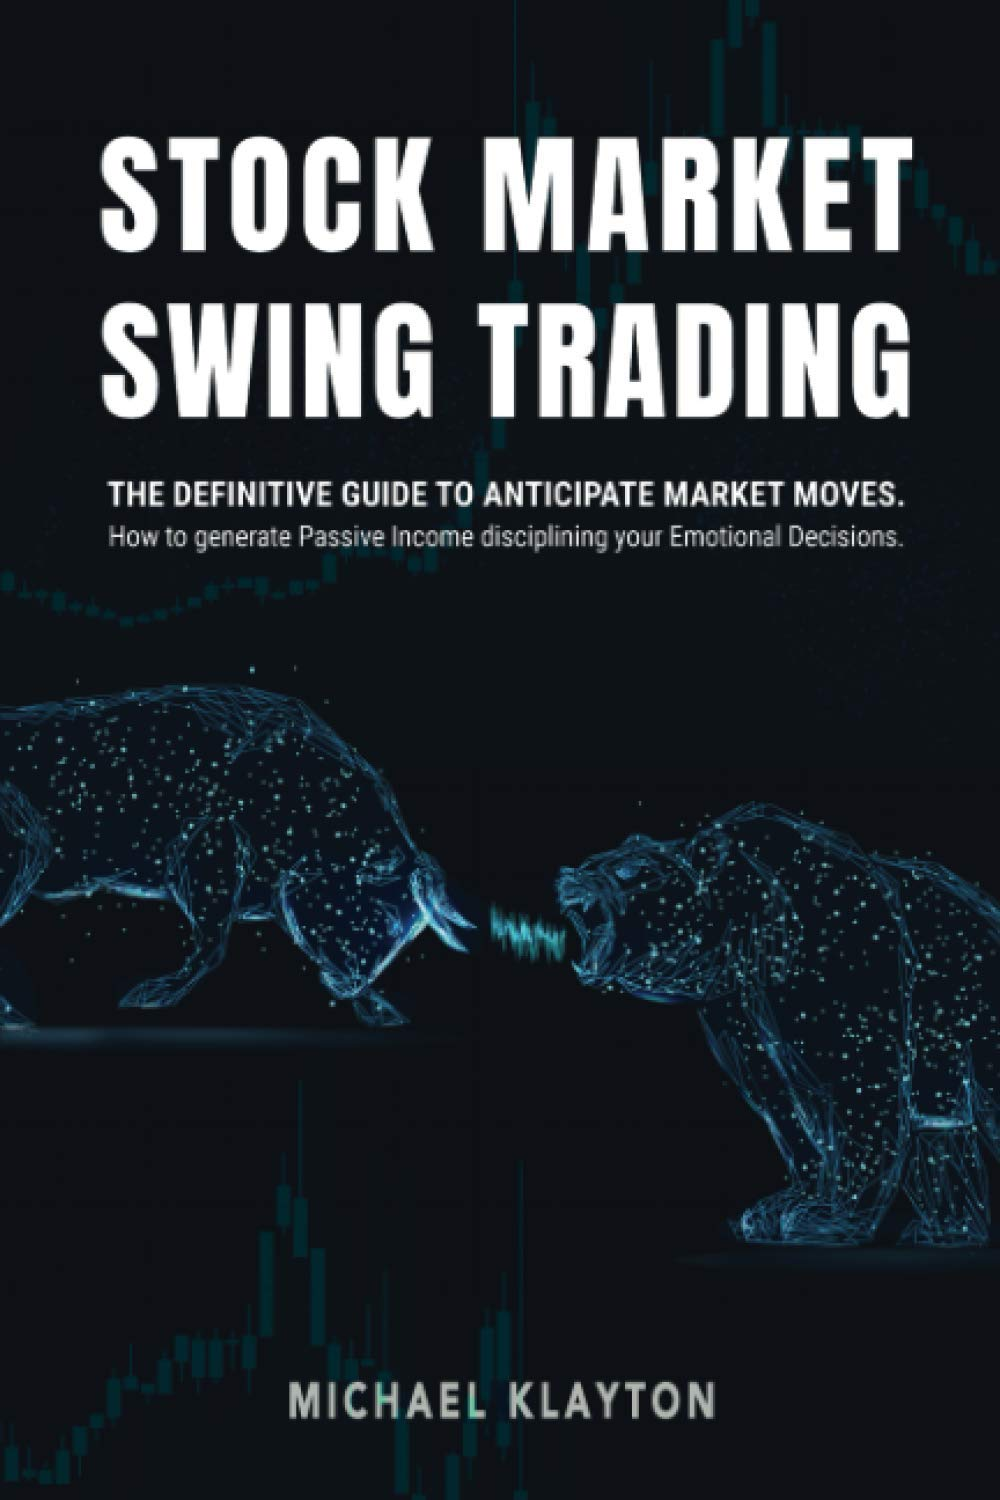 Image OfStock Market Swing Trading: The Definitive Guide To Anticipate Market Moves. How To Generate Passive Income Disciplining Y...